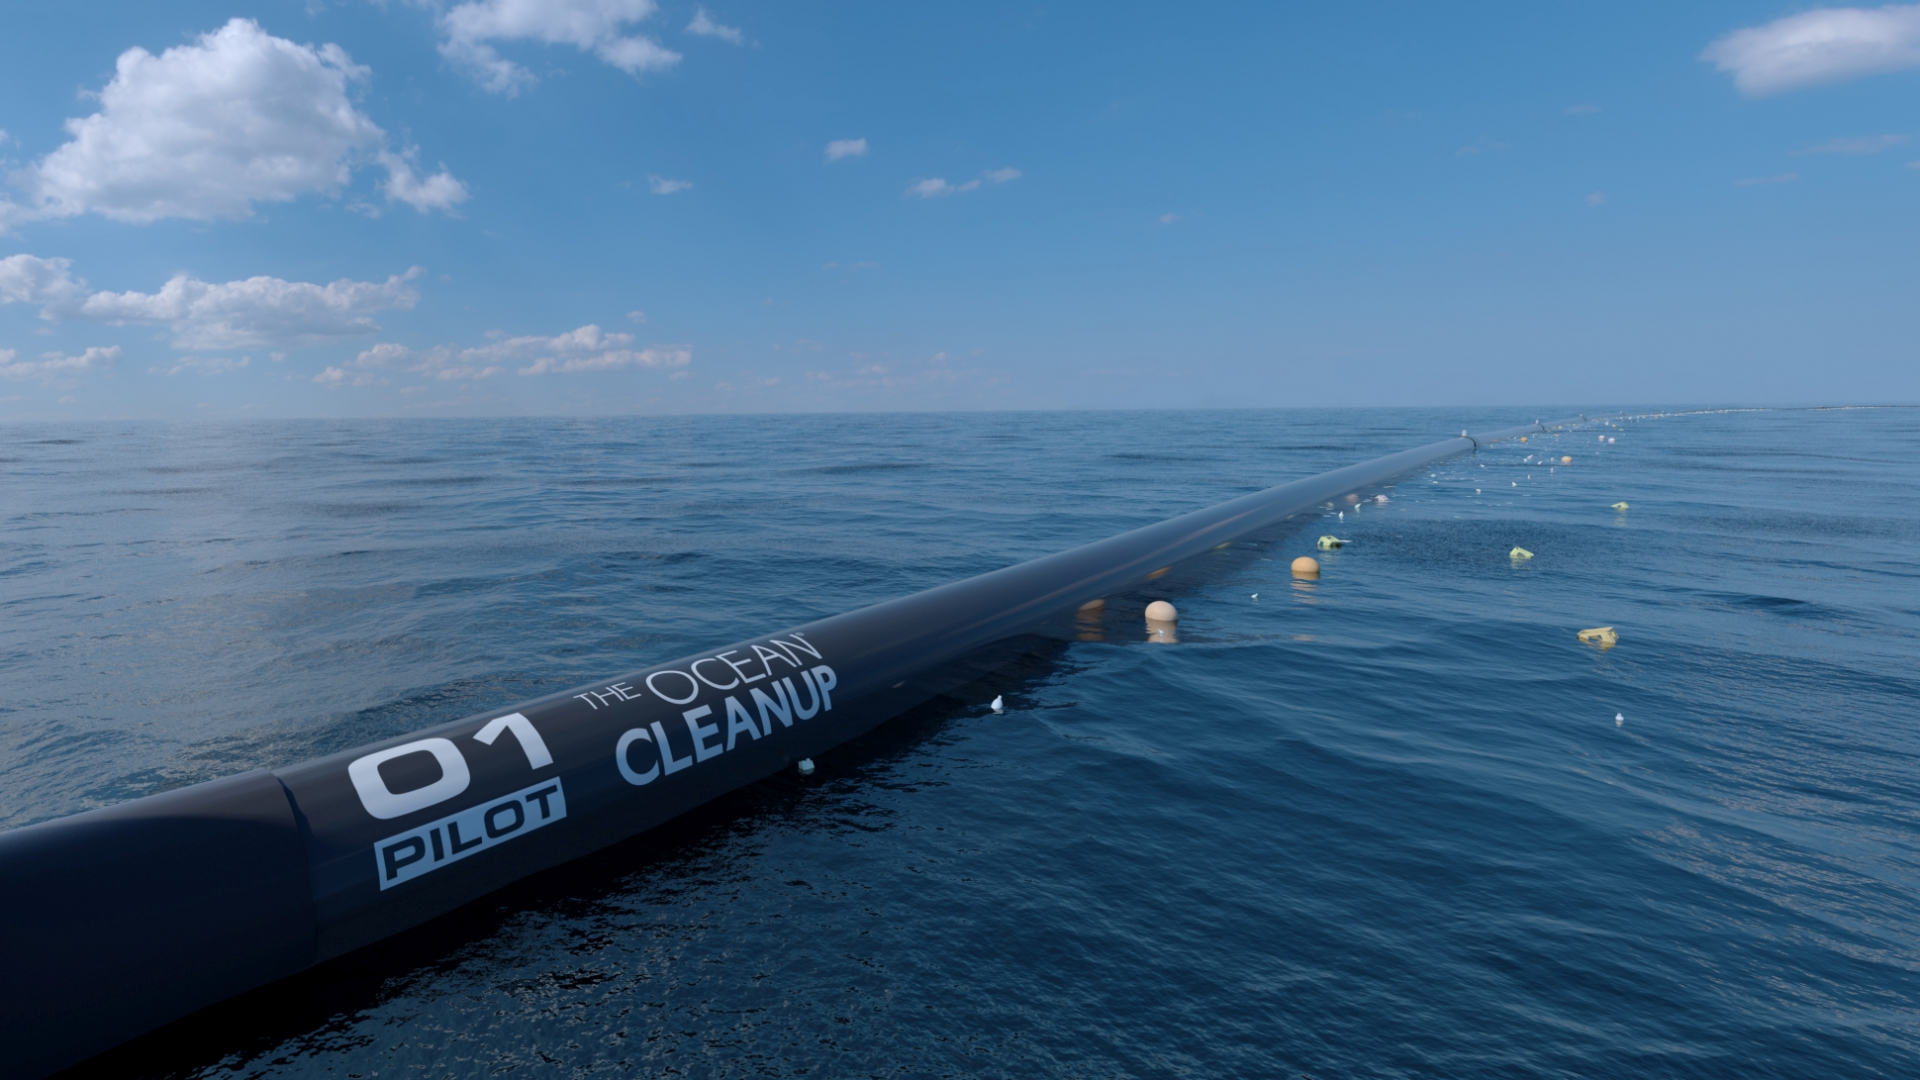 theoceancleanup-2-04.jpg